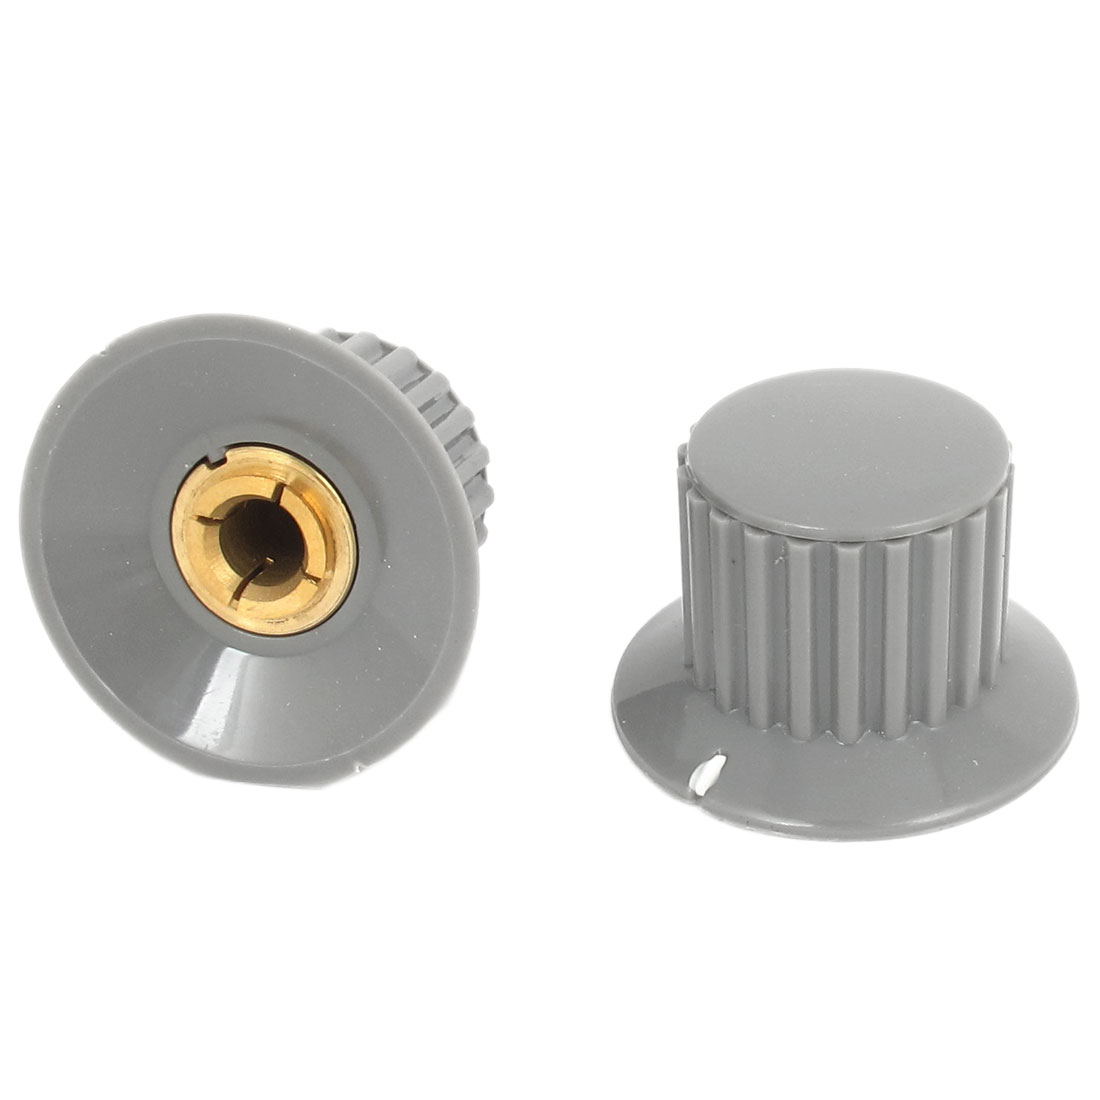 2 Pcs Replacement 6mm Dia Audio Volume Control Potentiometer Knobs 32mmx21mm